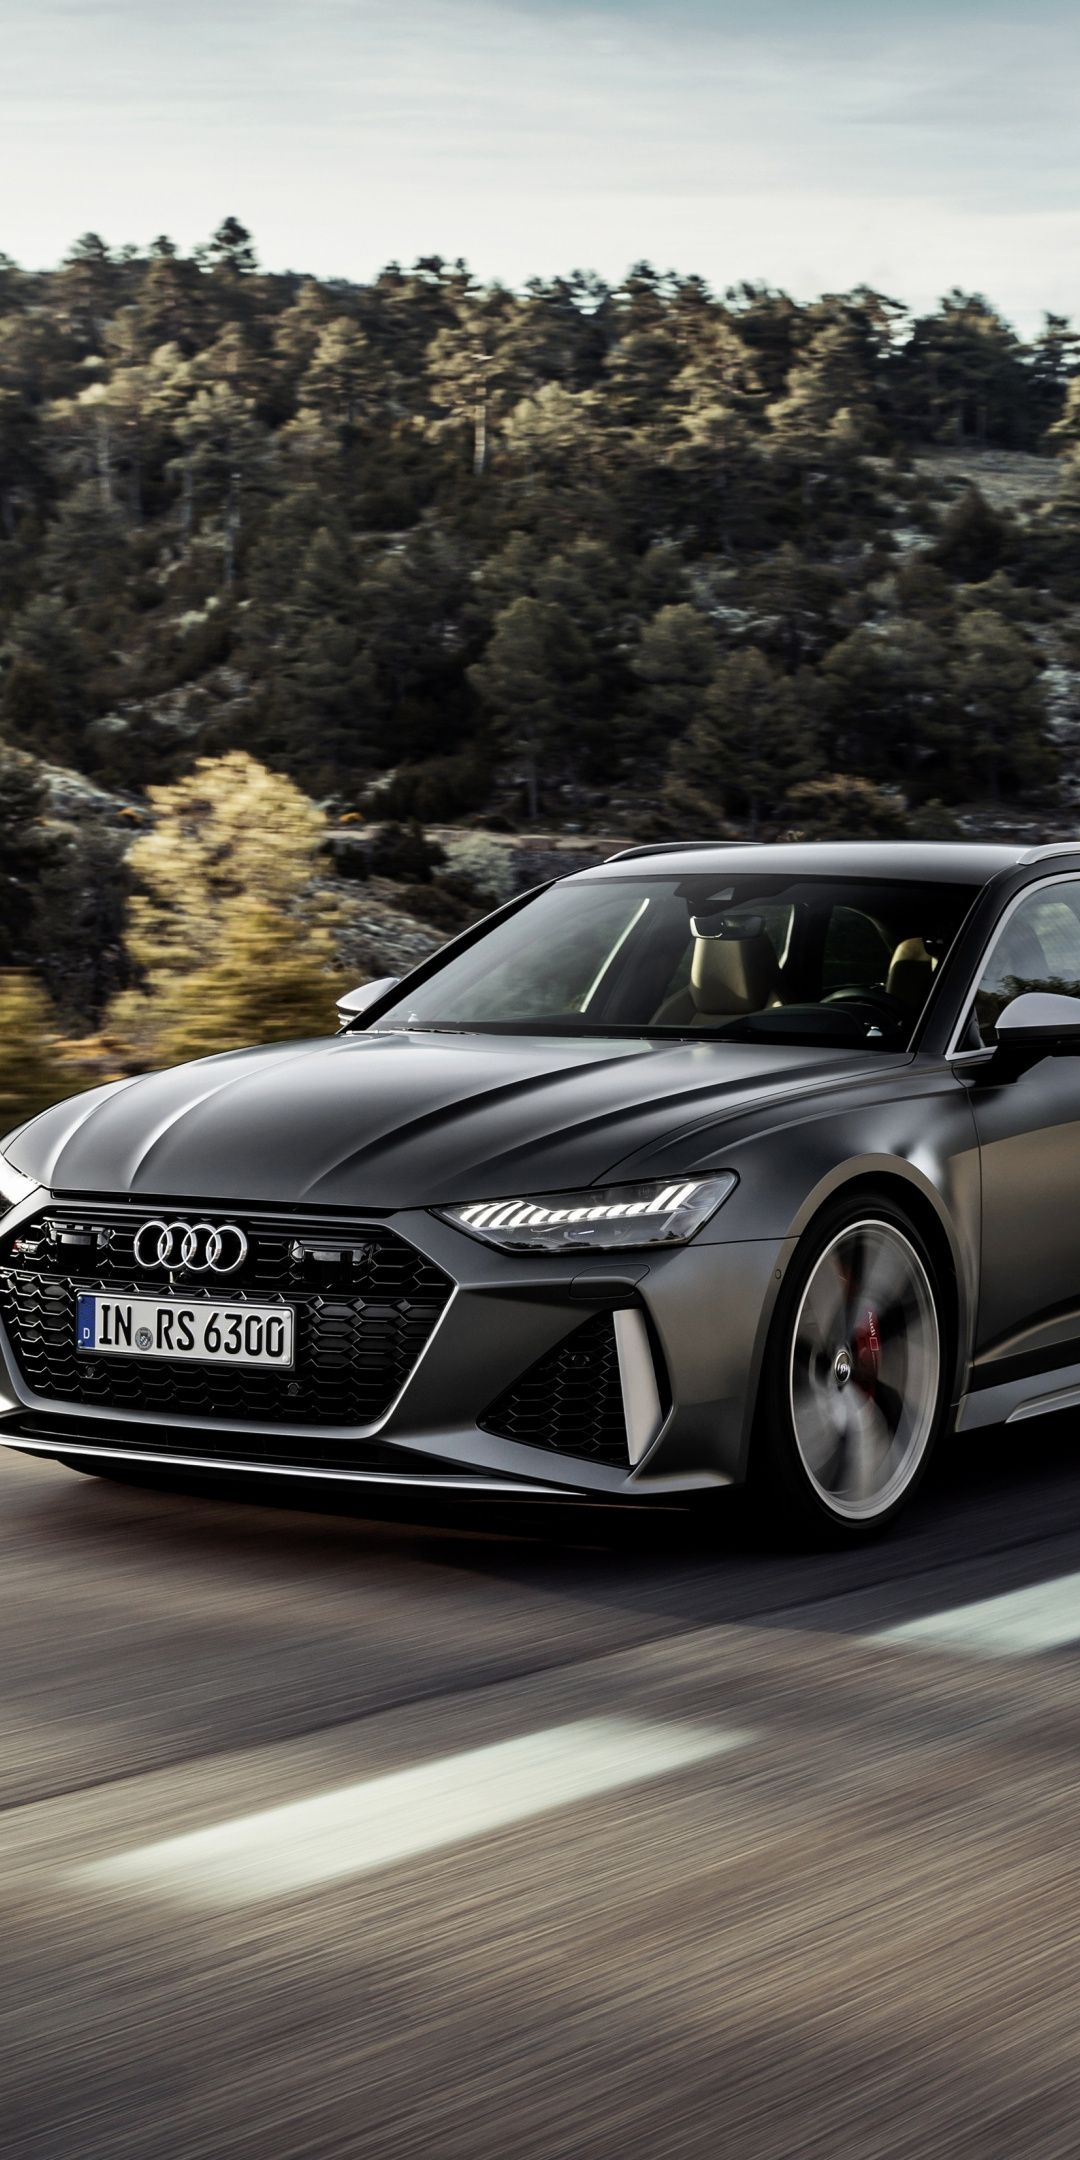 1080x2160 2020 Audi Rs6 Avant Black Car Wallpaper Black Audi